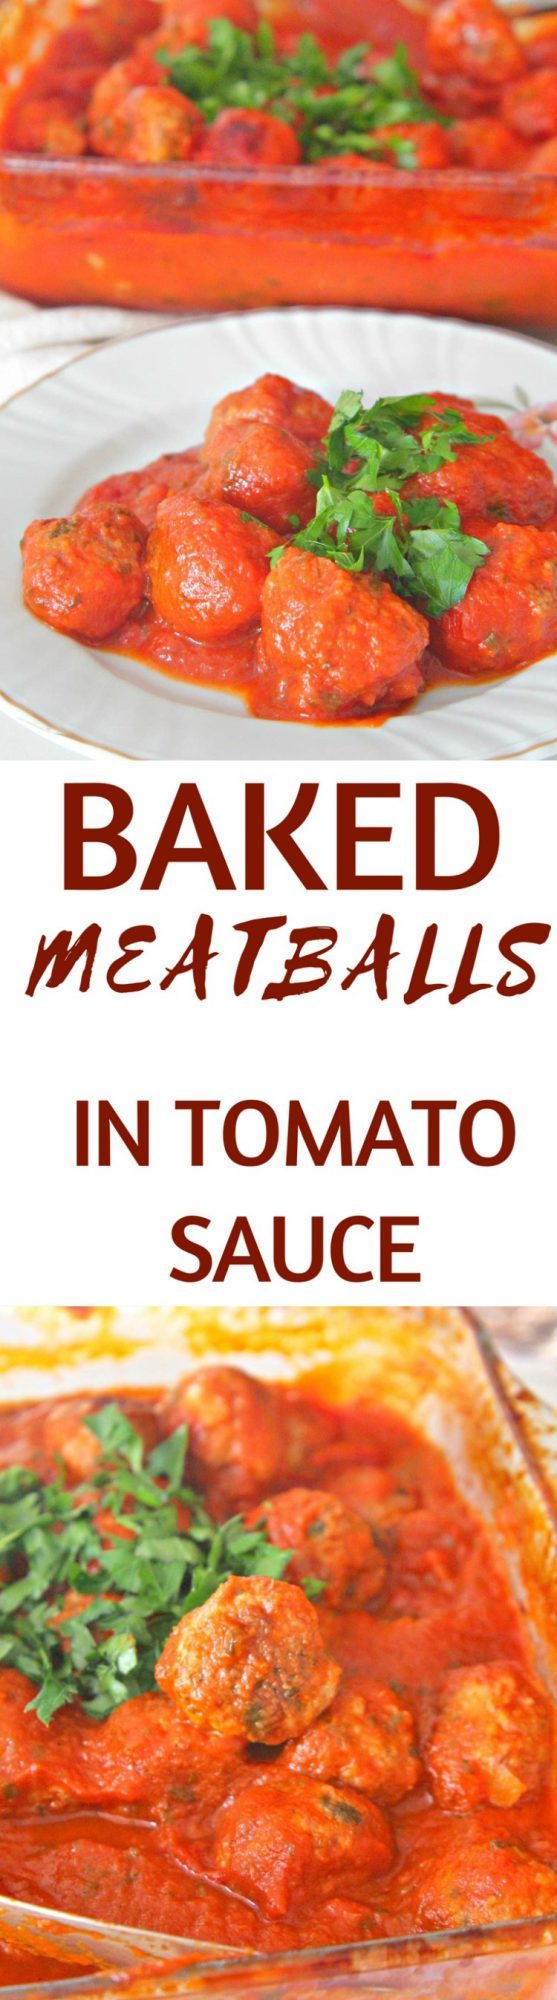 These amazing baked meatballs in sauce are insanely delicious and the perfect accompaniment to a pasta dish! Great comfort food, perfect winter meal!